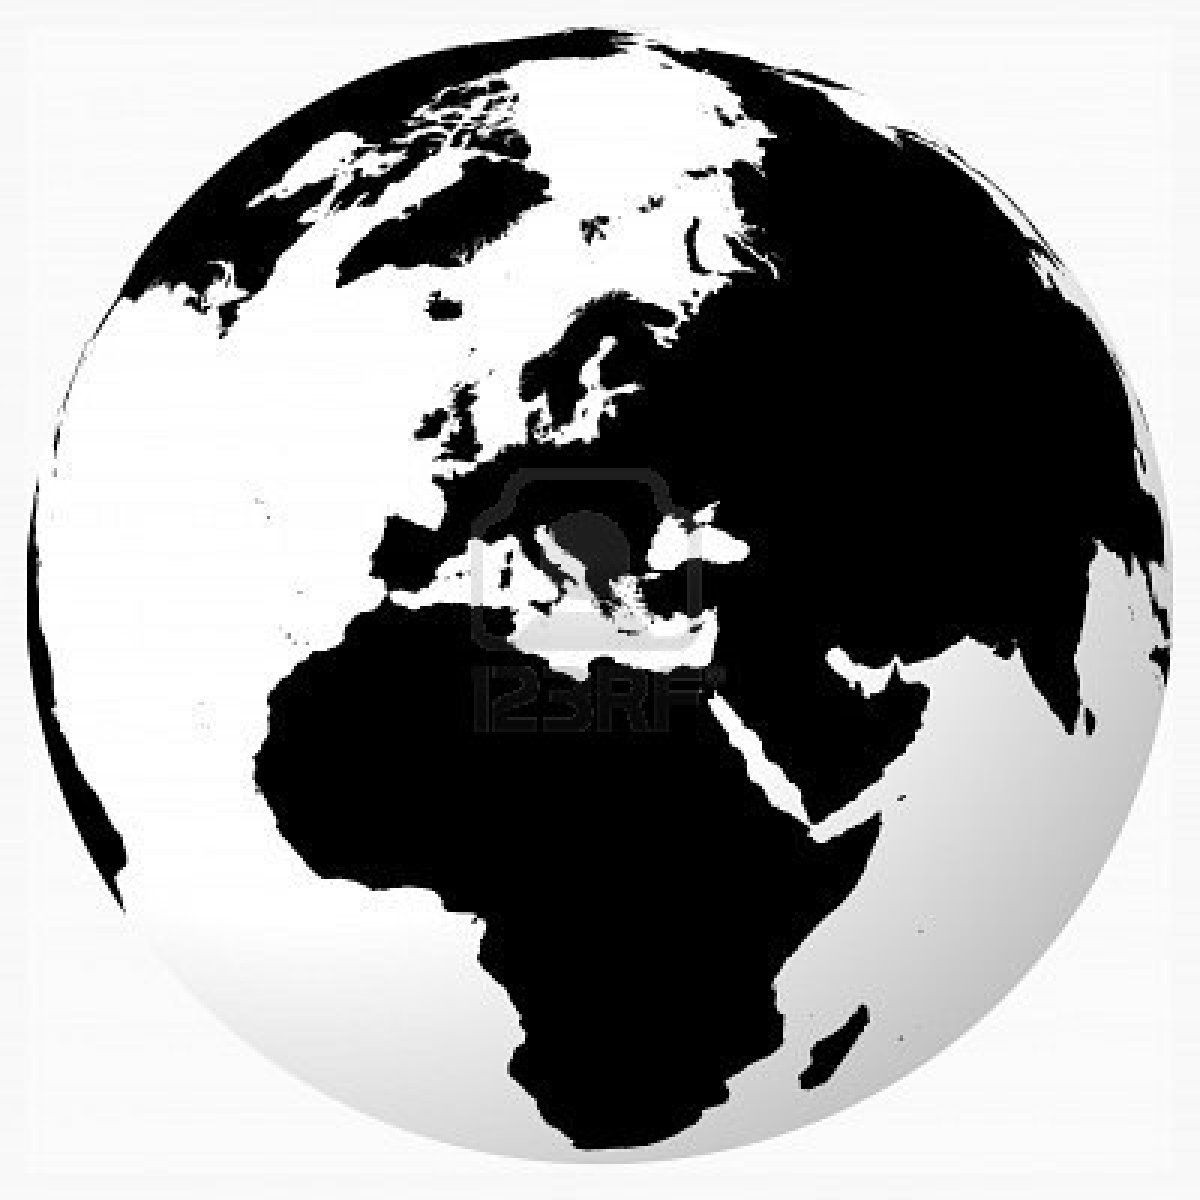 Free Black And White World Png, Download Free Clip Art, Free Clip.